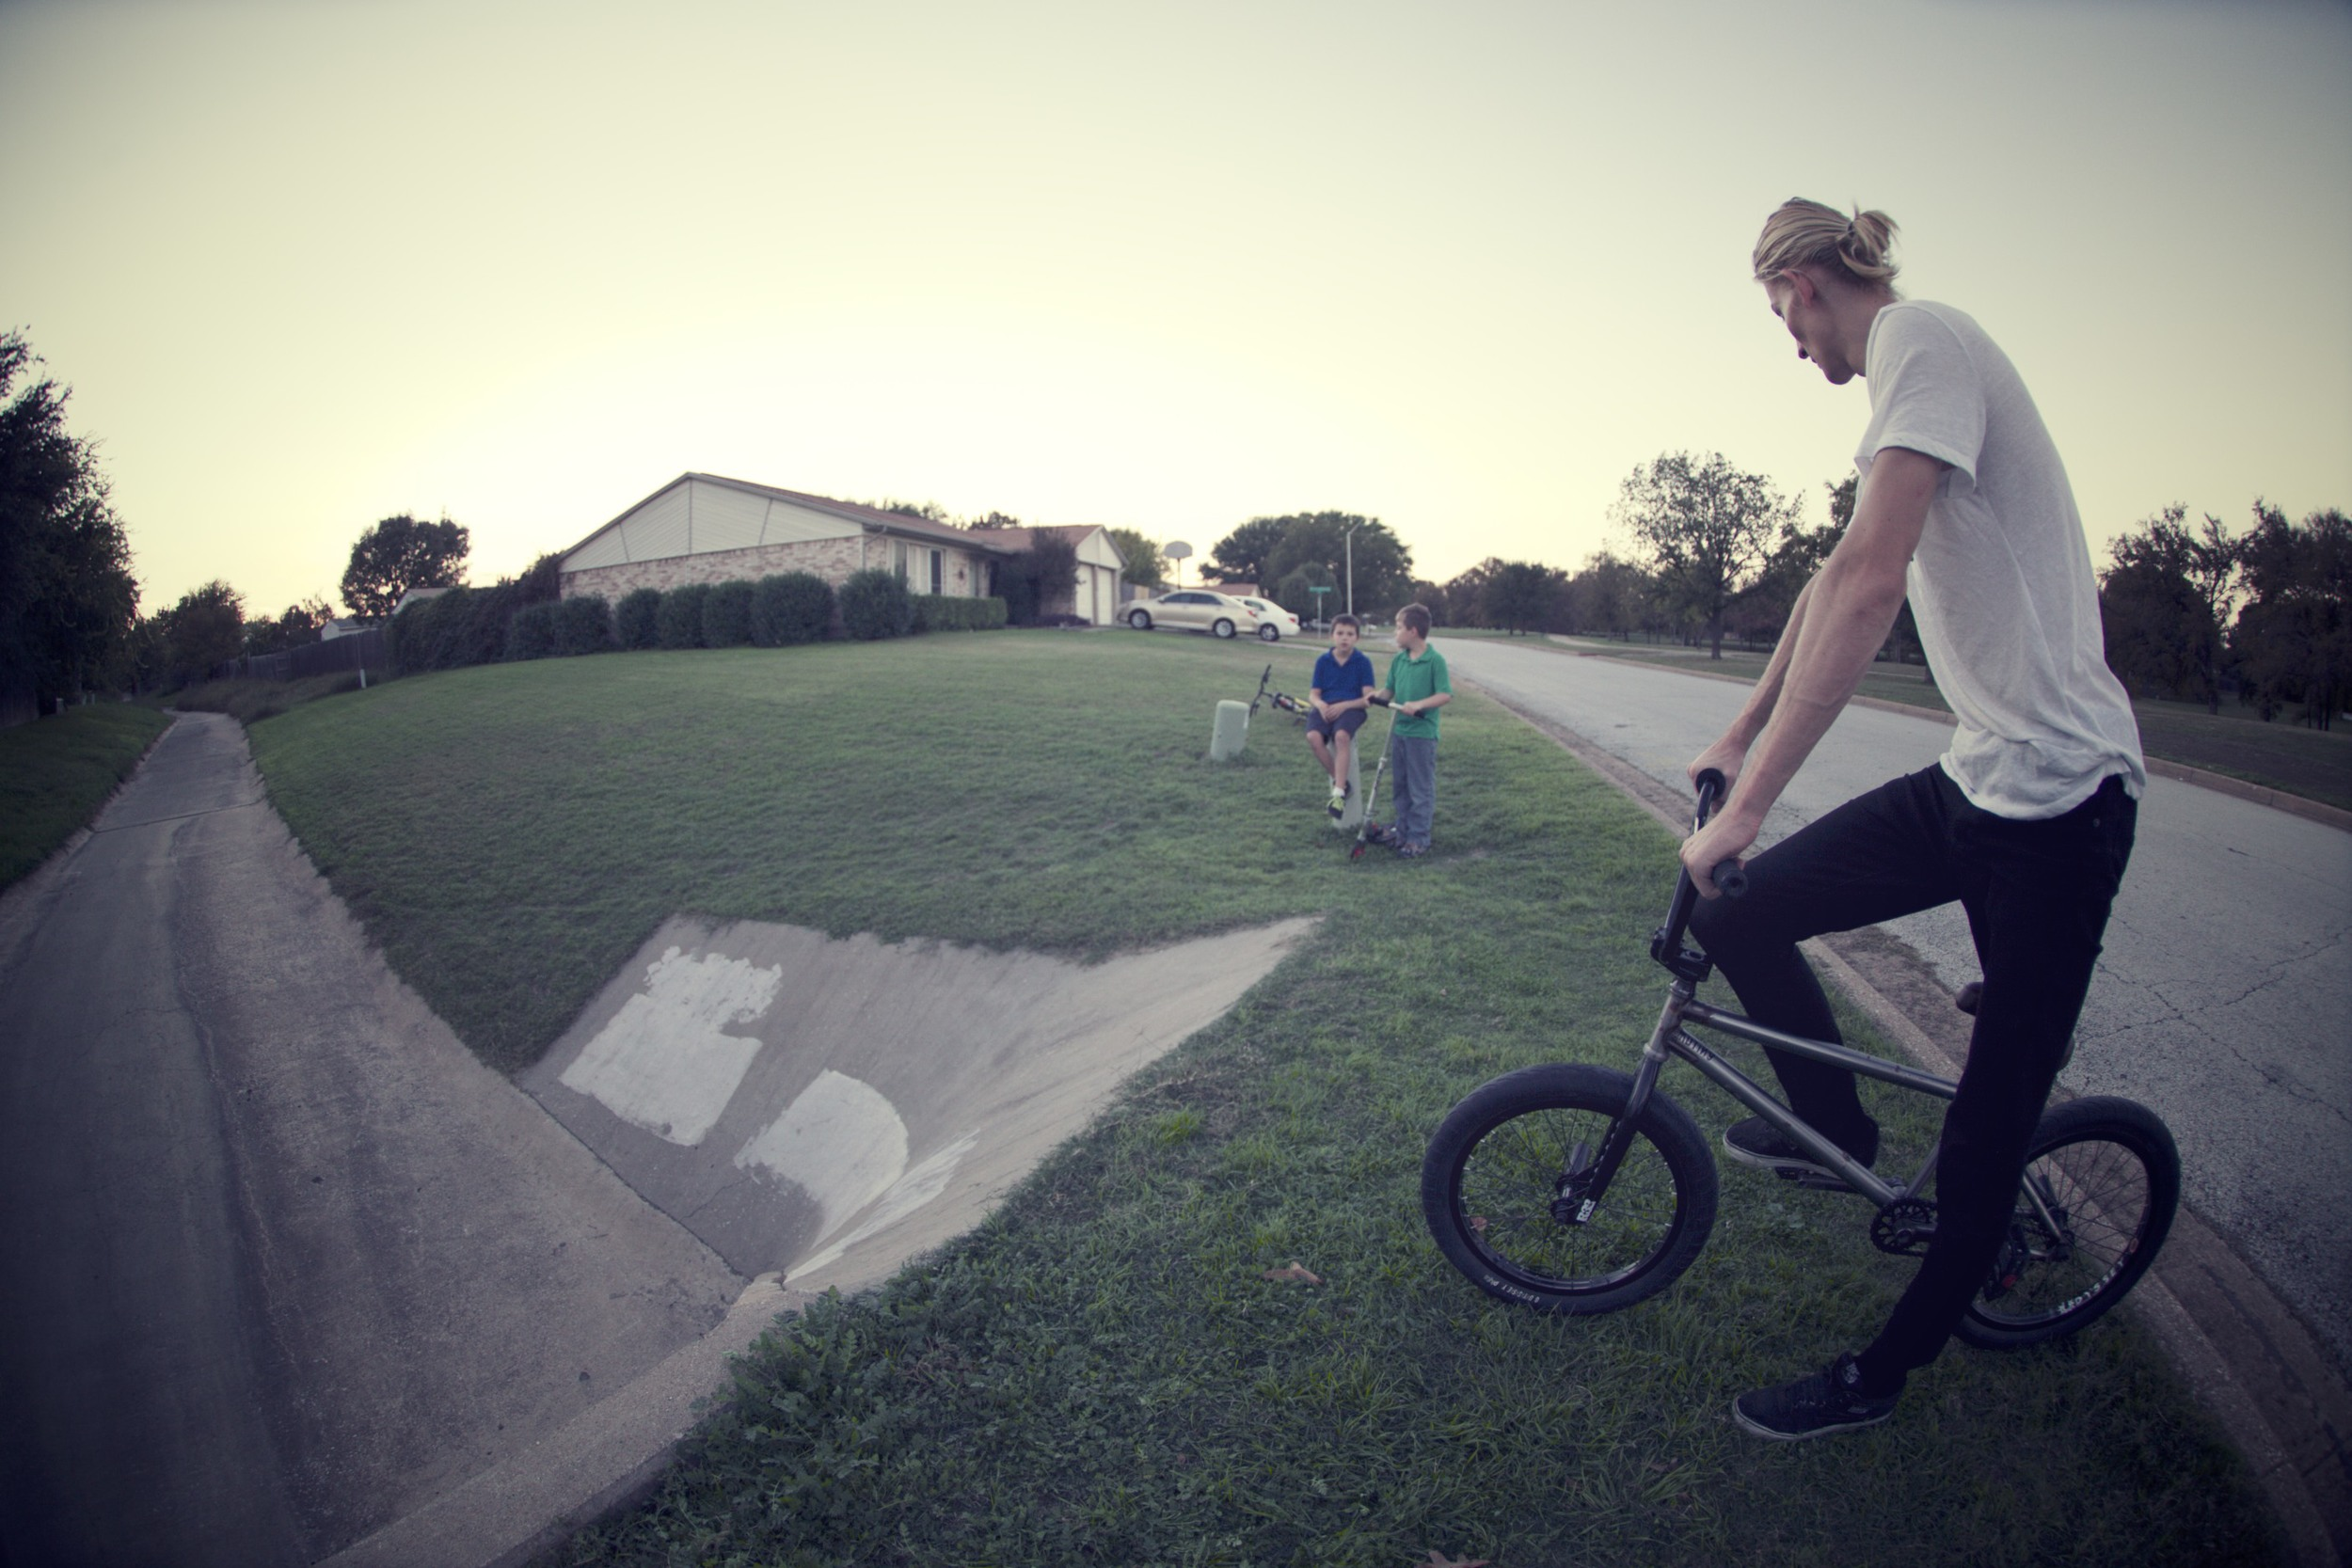 Talking to a couple of kids who ride the same spot he rode at the same age. Sweet.